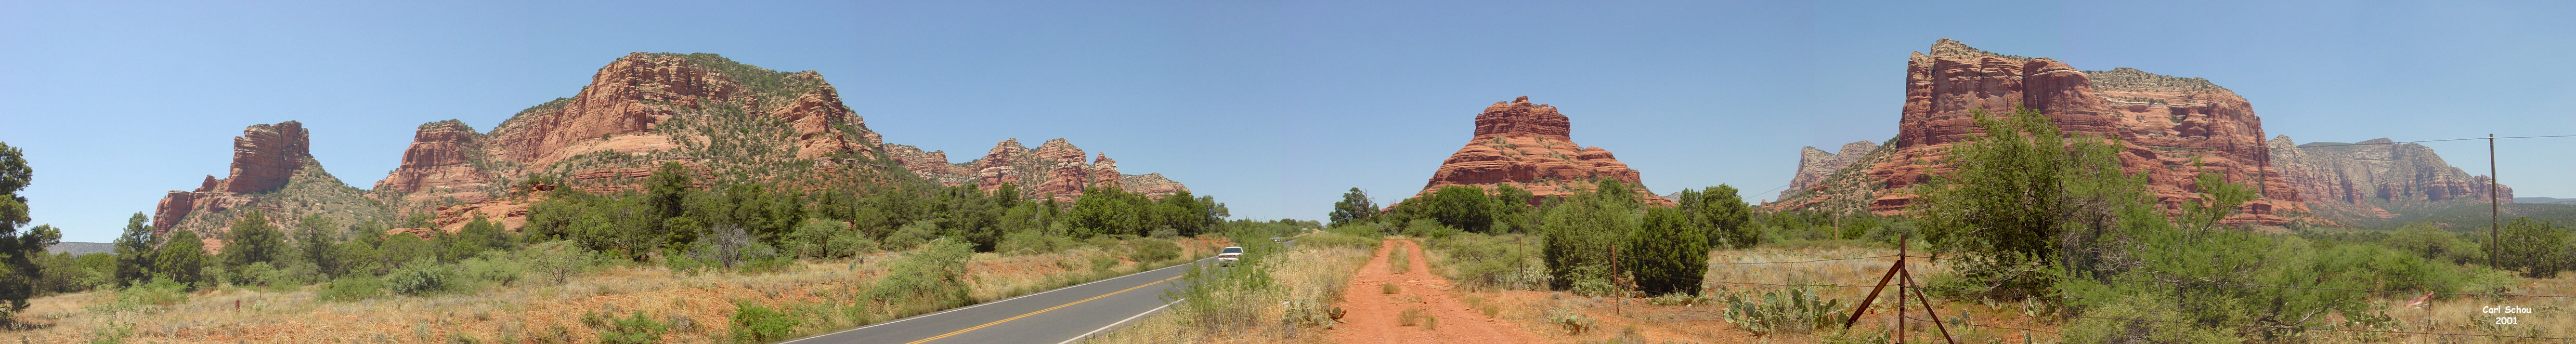 Bell Rock Panorama, 4954 by 662 pixels